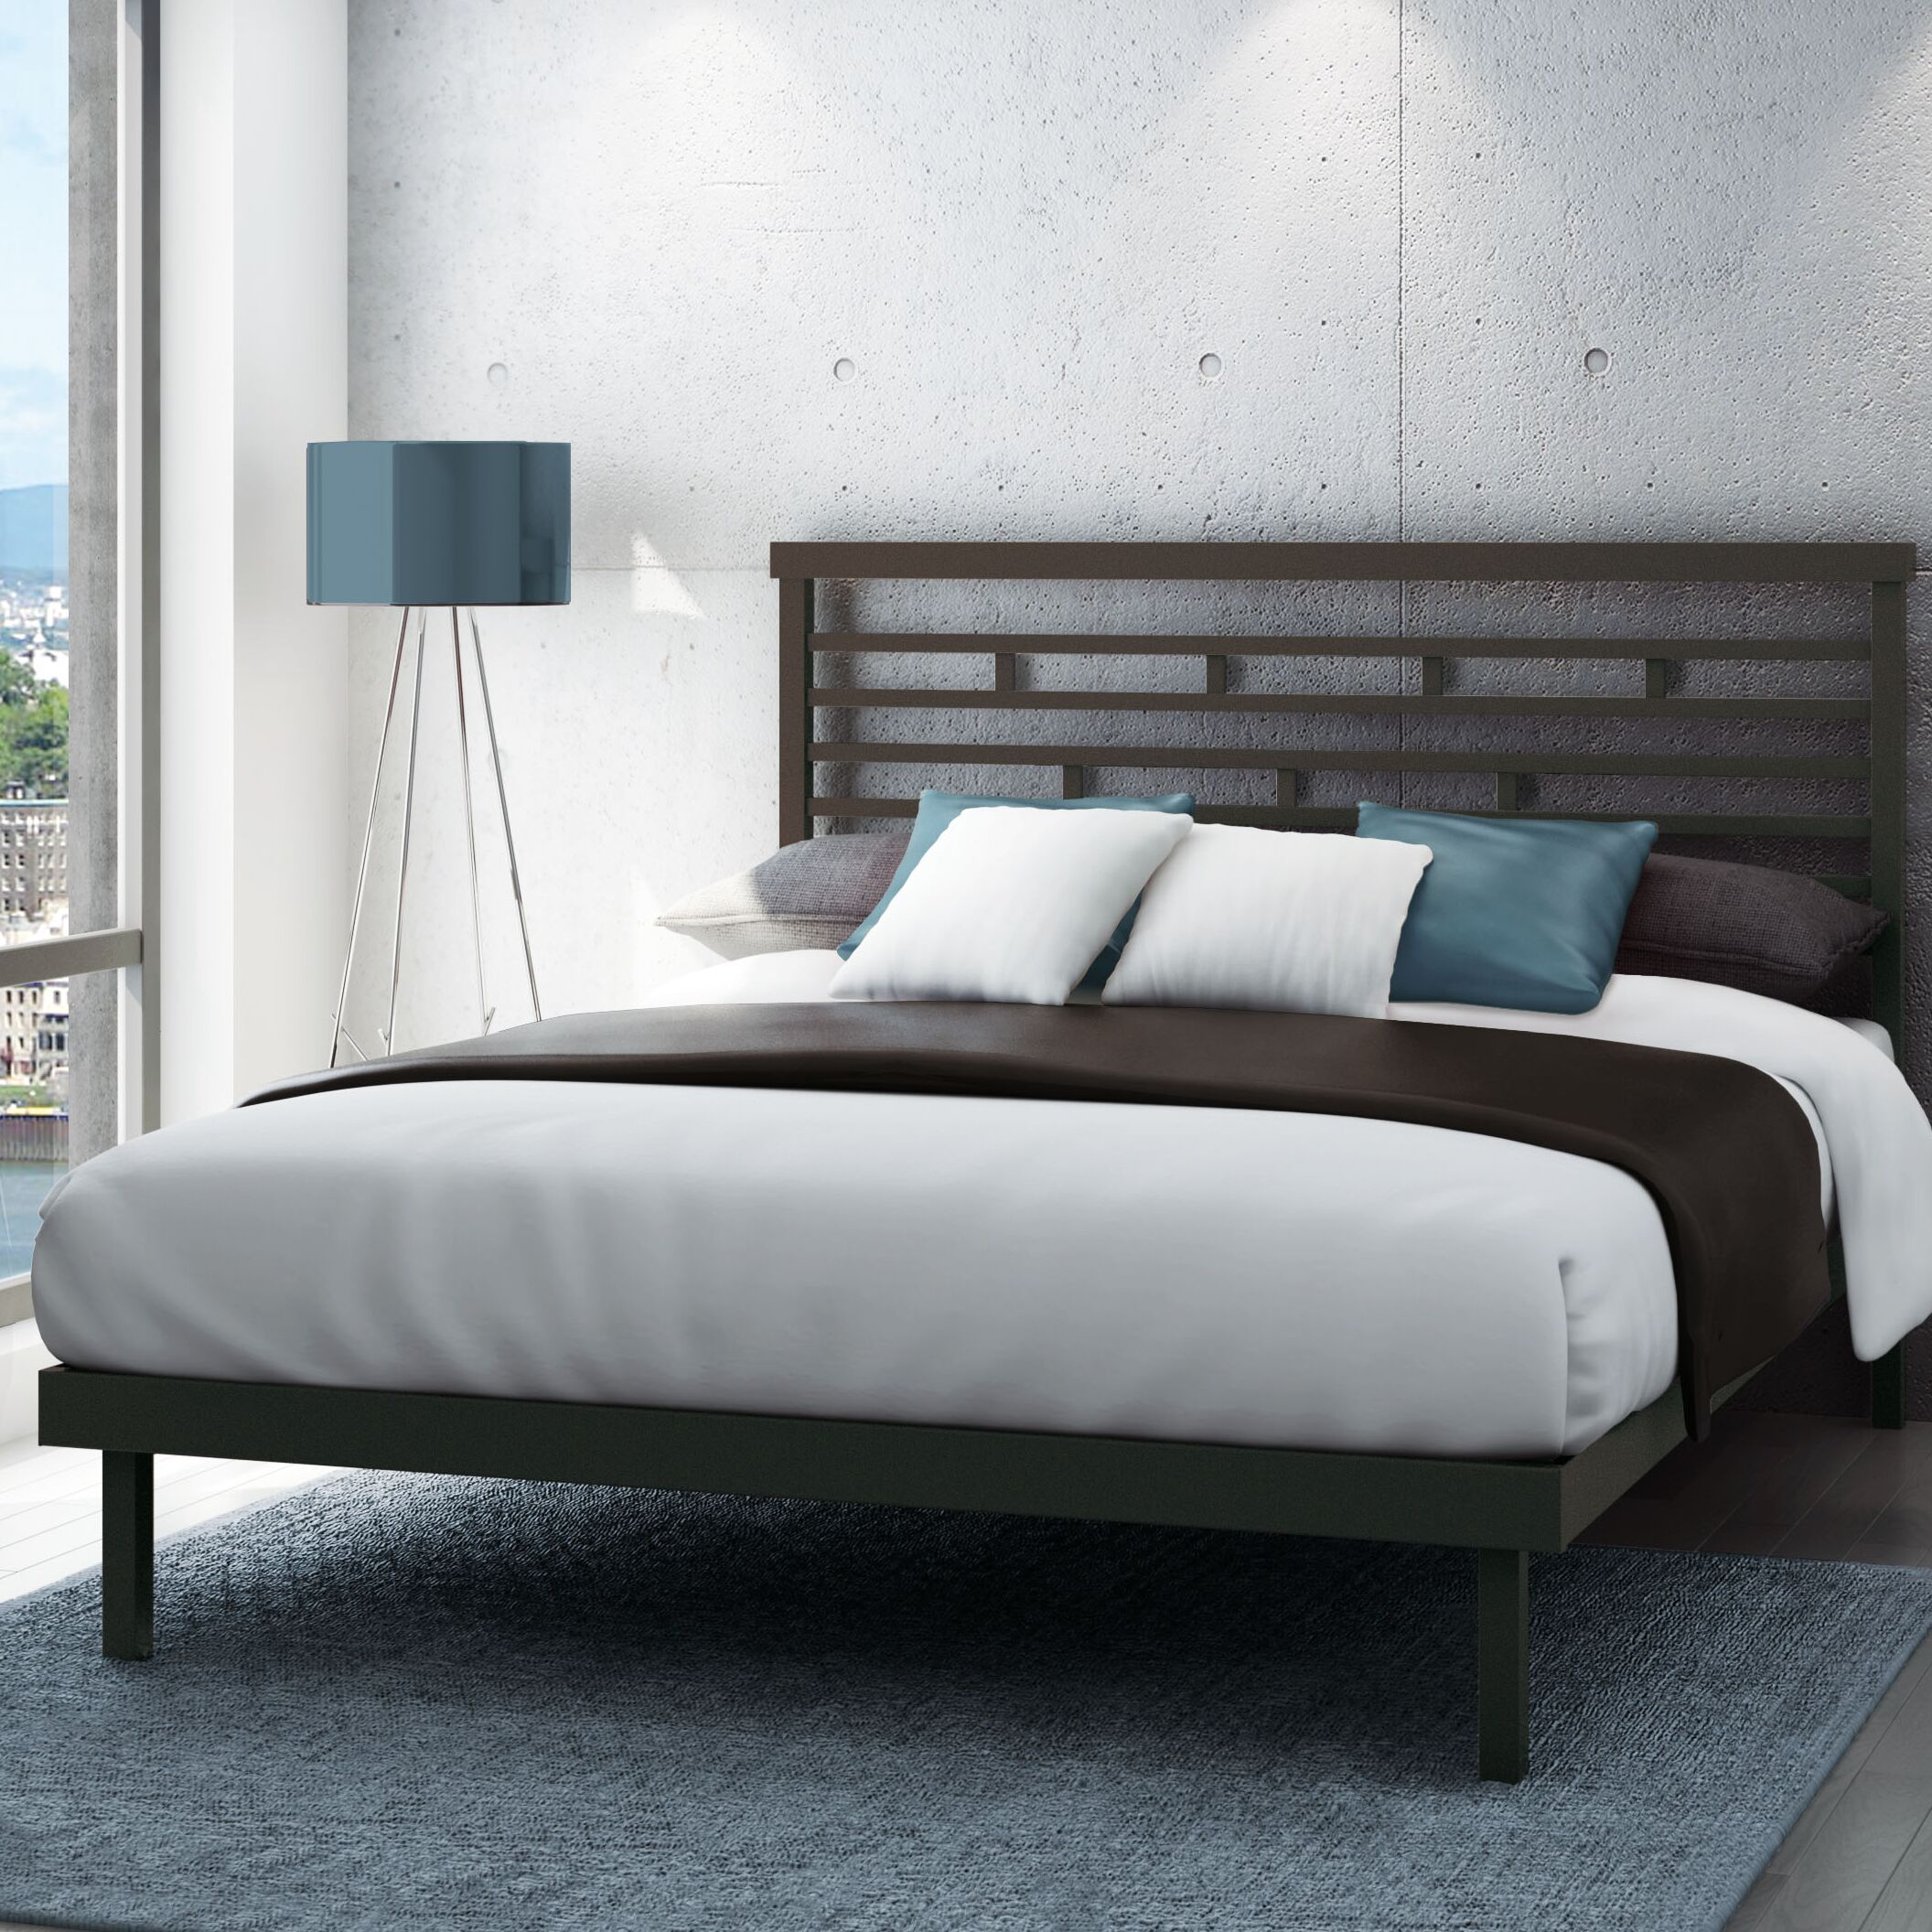 Fobbs Platform Bed Size: Queen, Color: Textured Dark Brown